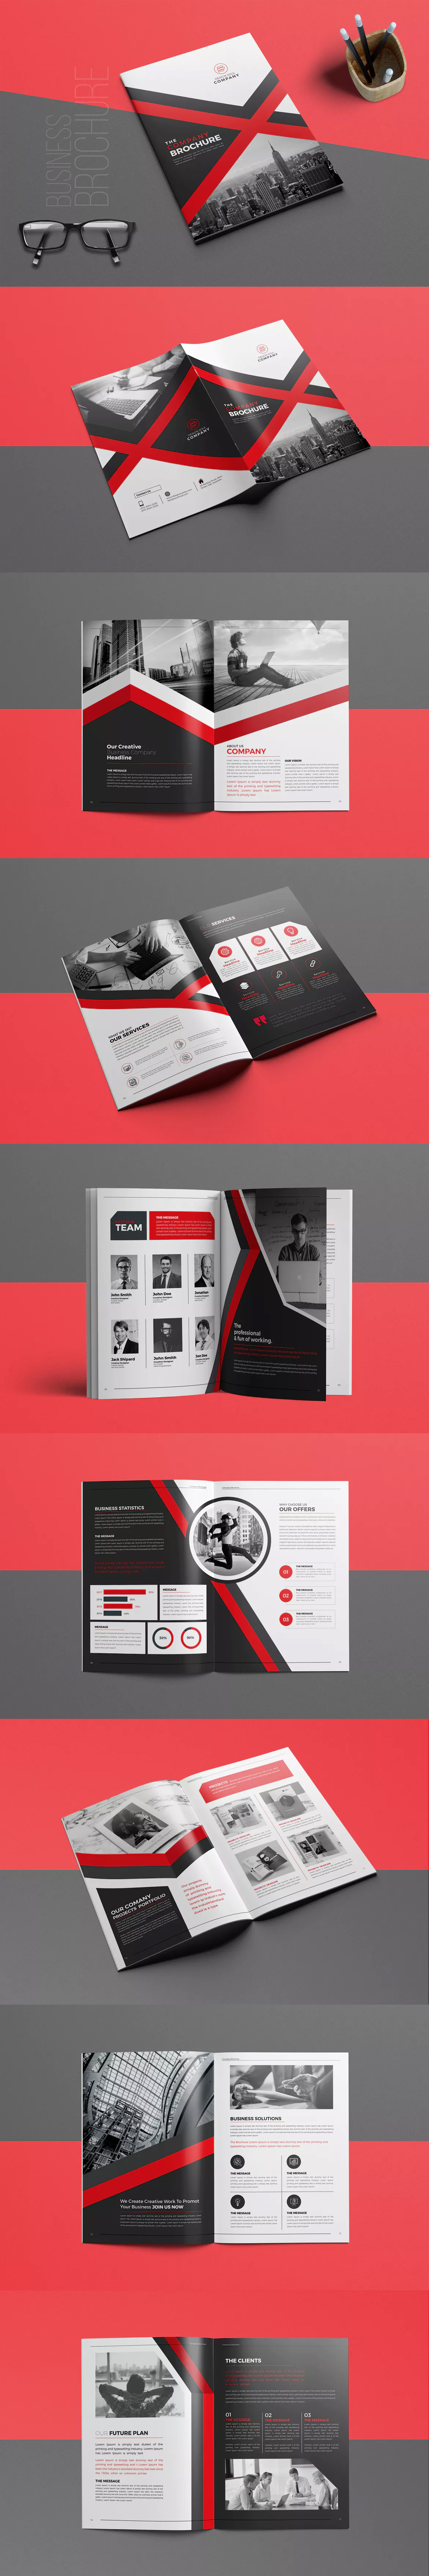 Brochure Template InDesign INDD A4 and US Letter Size | Brochure ...